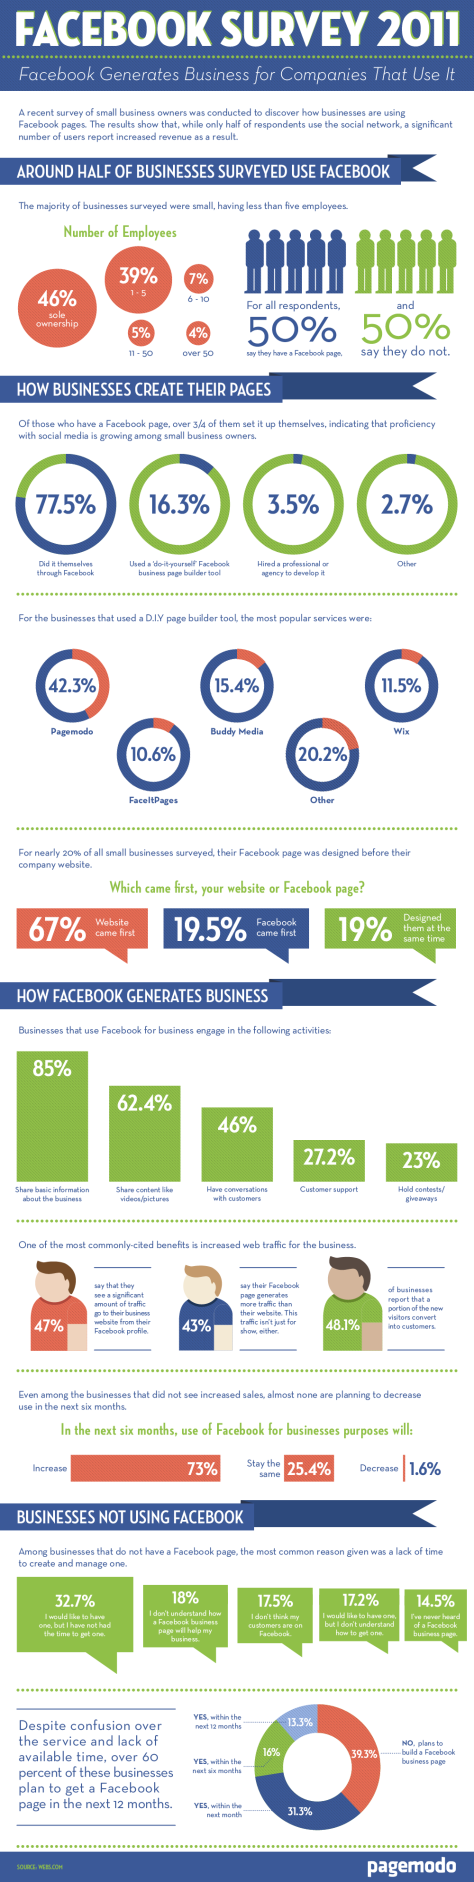 Facebook Survey 2011